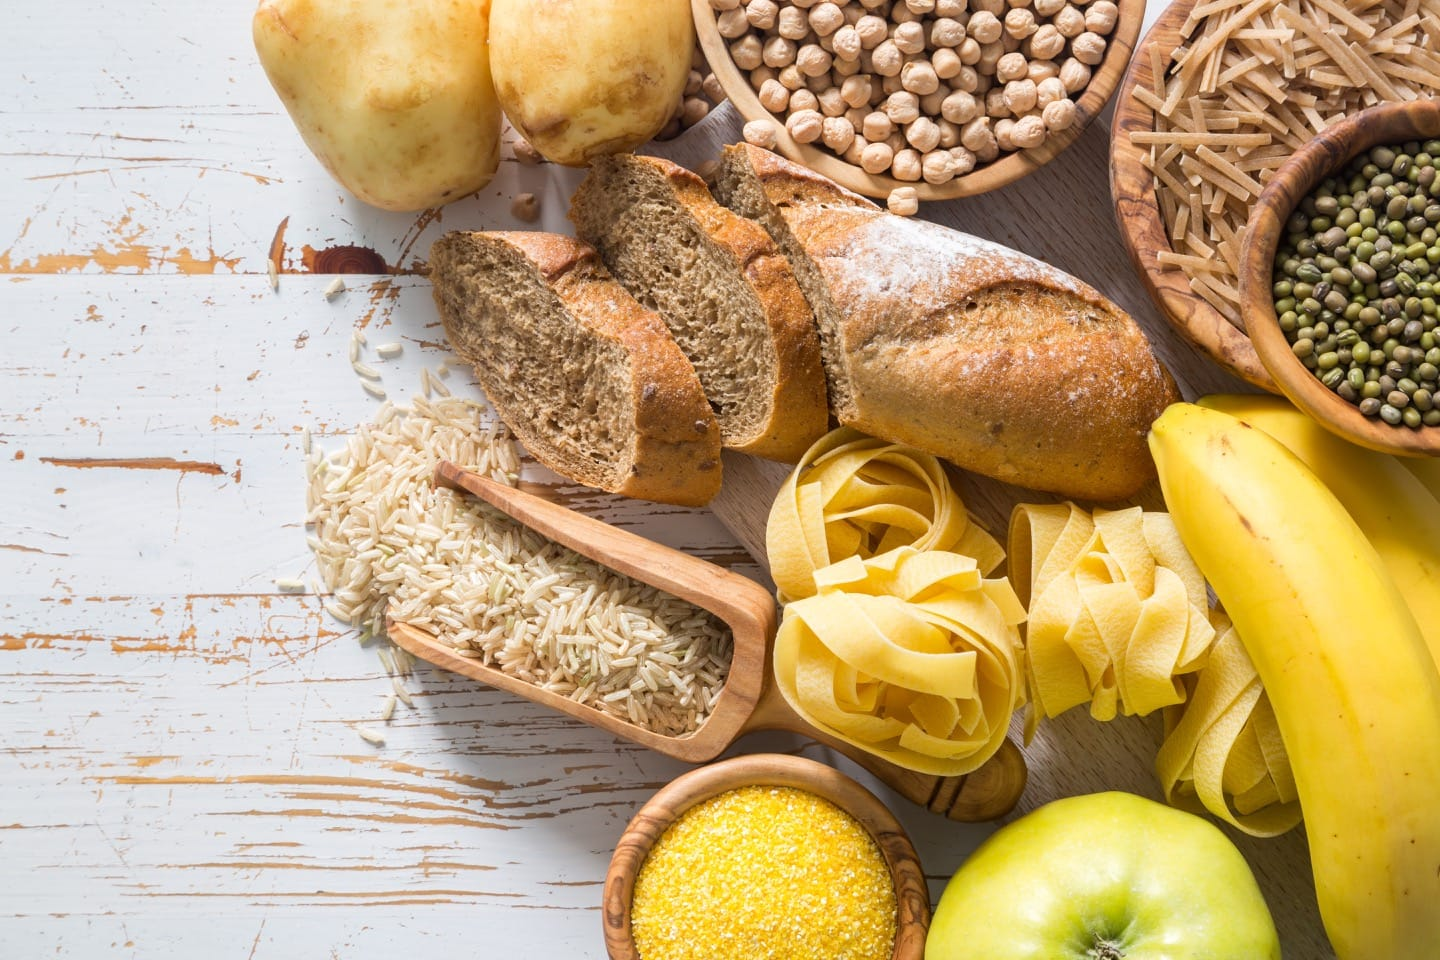 Selection-of-comptex-carbohydrate-food-sources